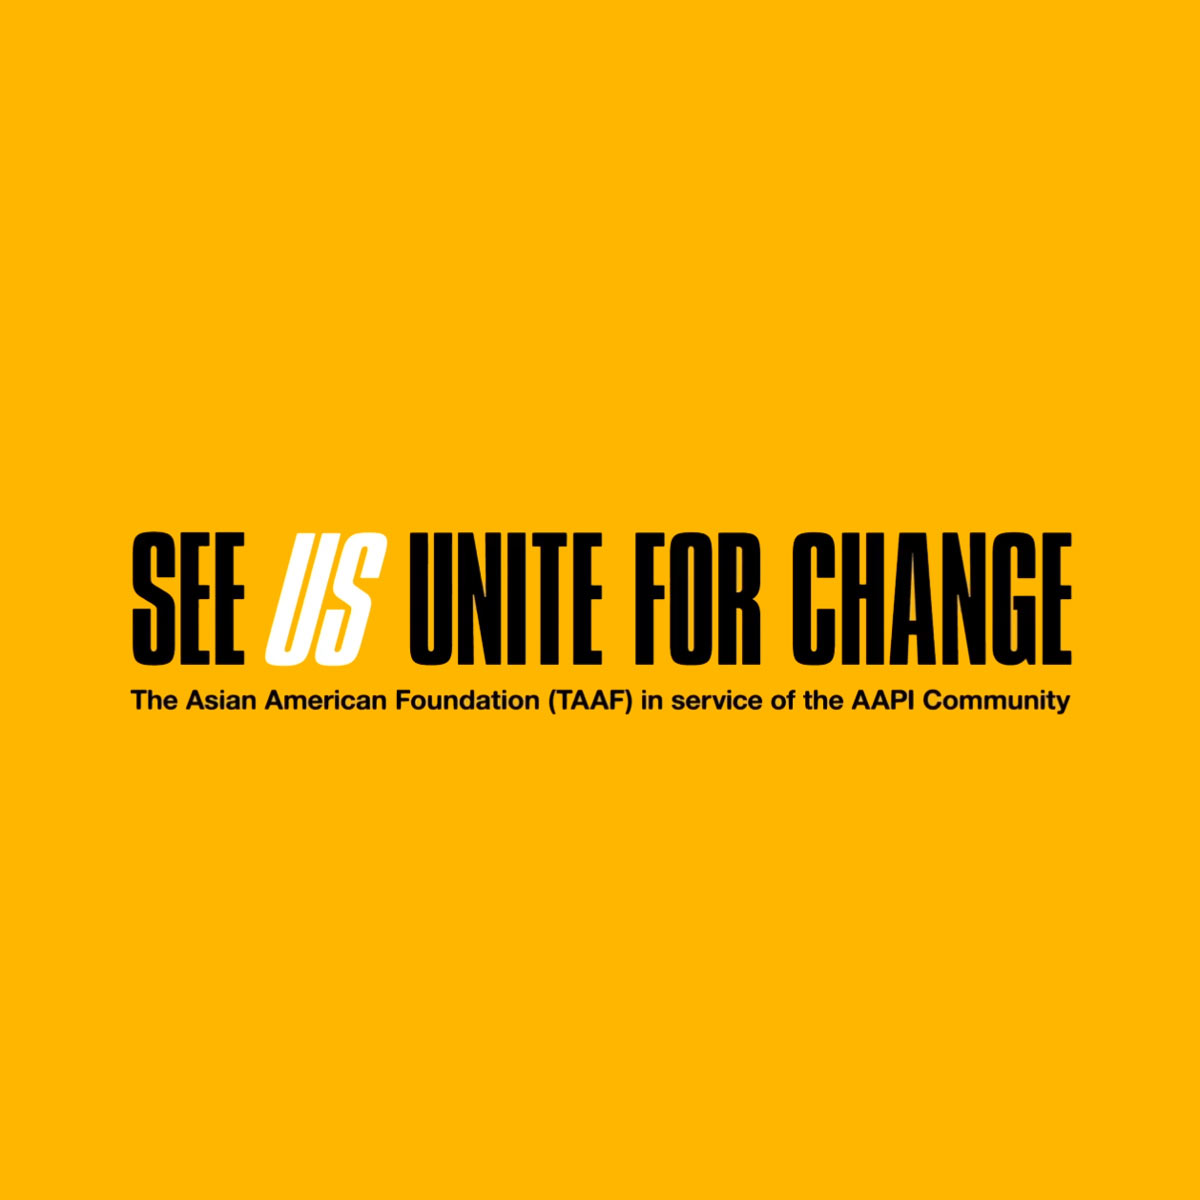 See Us Unite for Change